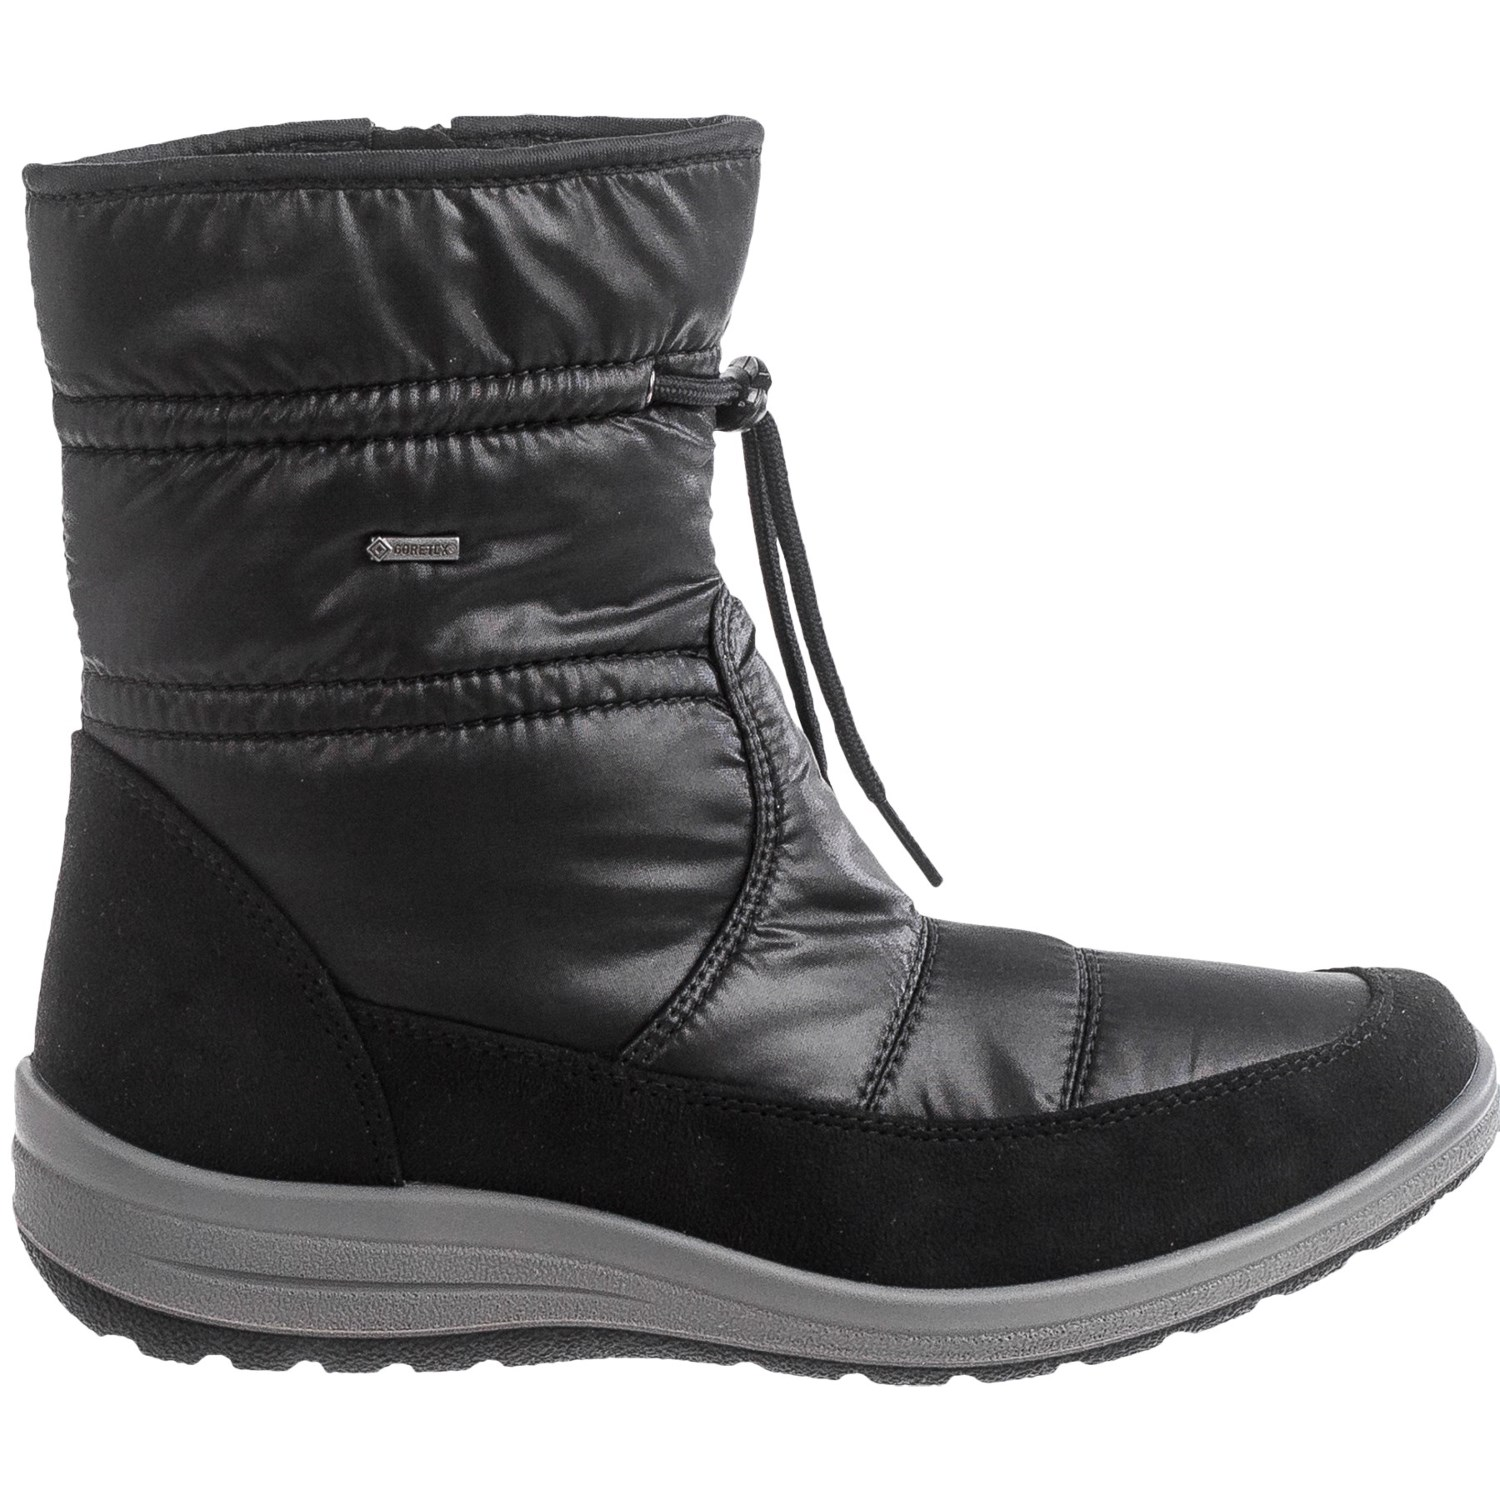 Ara Gloria Gore-Tex® Snow Boots (For Women) - Save 69%